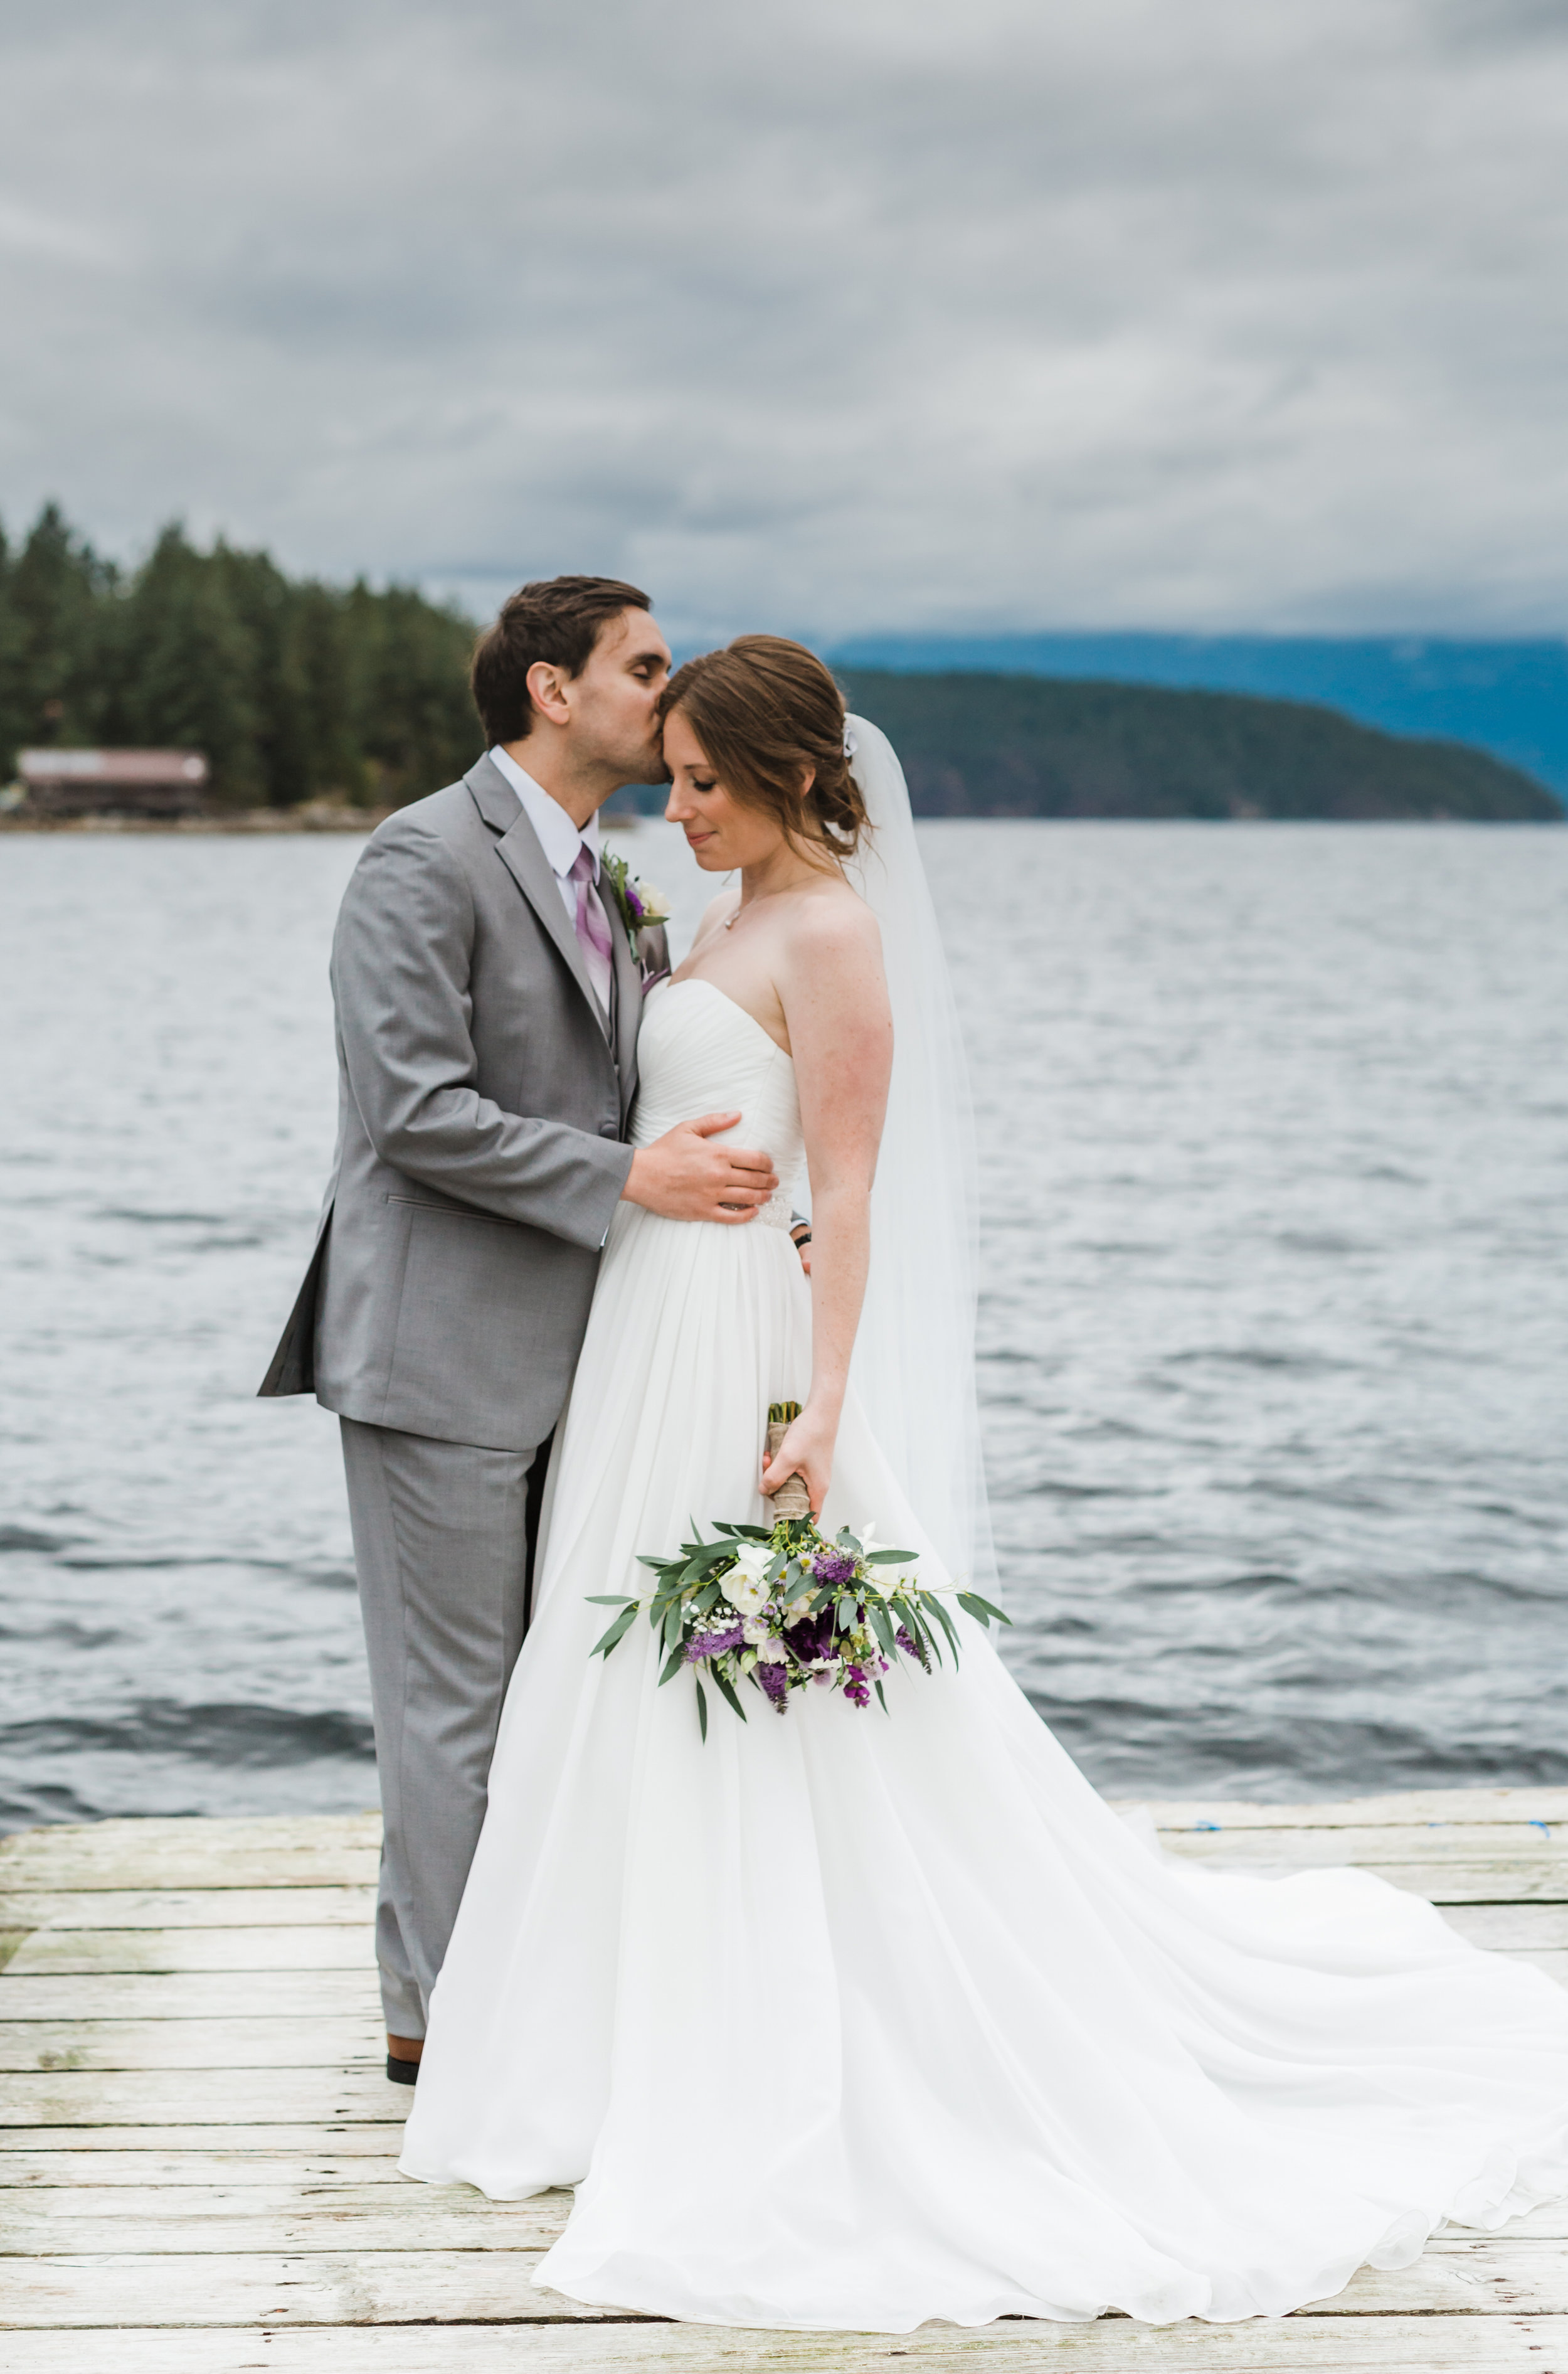 West Coast Wilderness Lodge Wedding Photos - Vancouver Wedding Photographer & Videographer - Sunshine Coast Wedding Photos - Sunshine Coast Wedding Photographer - Jennifer Picard Photography - IMG_6461.jpg